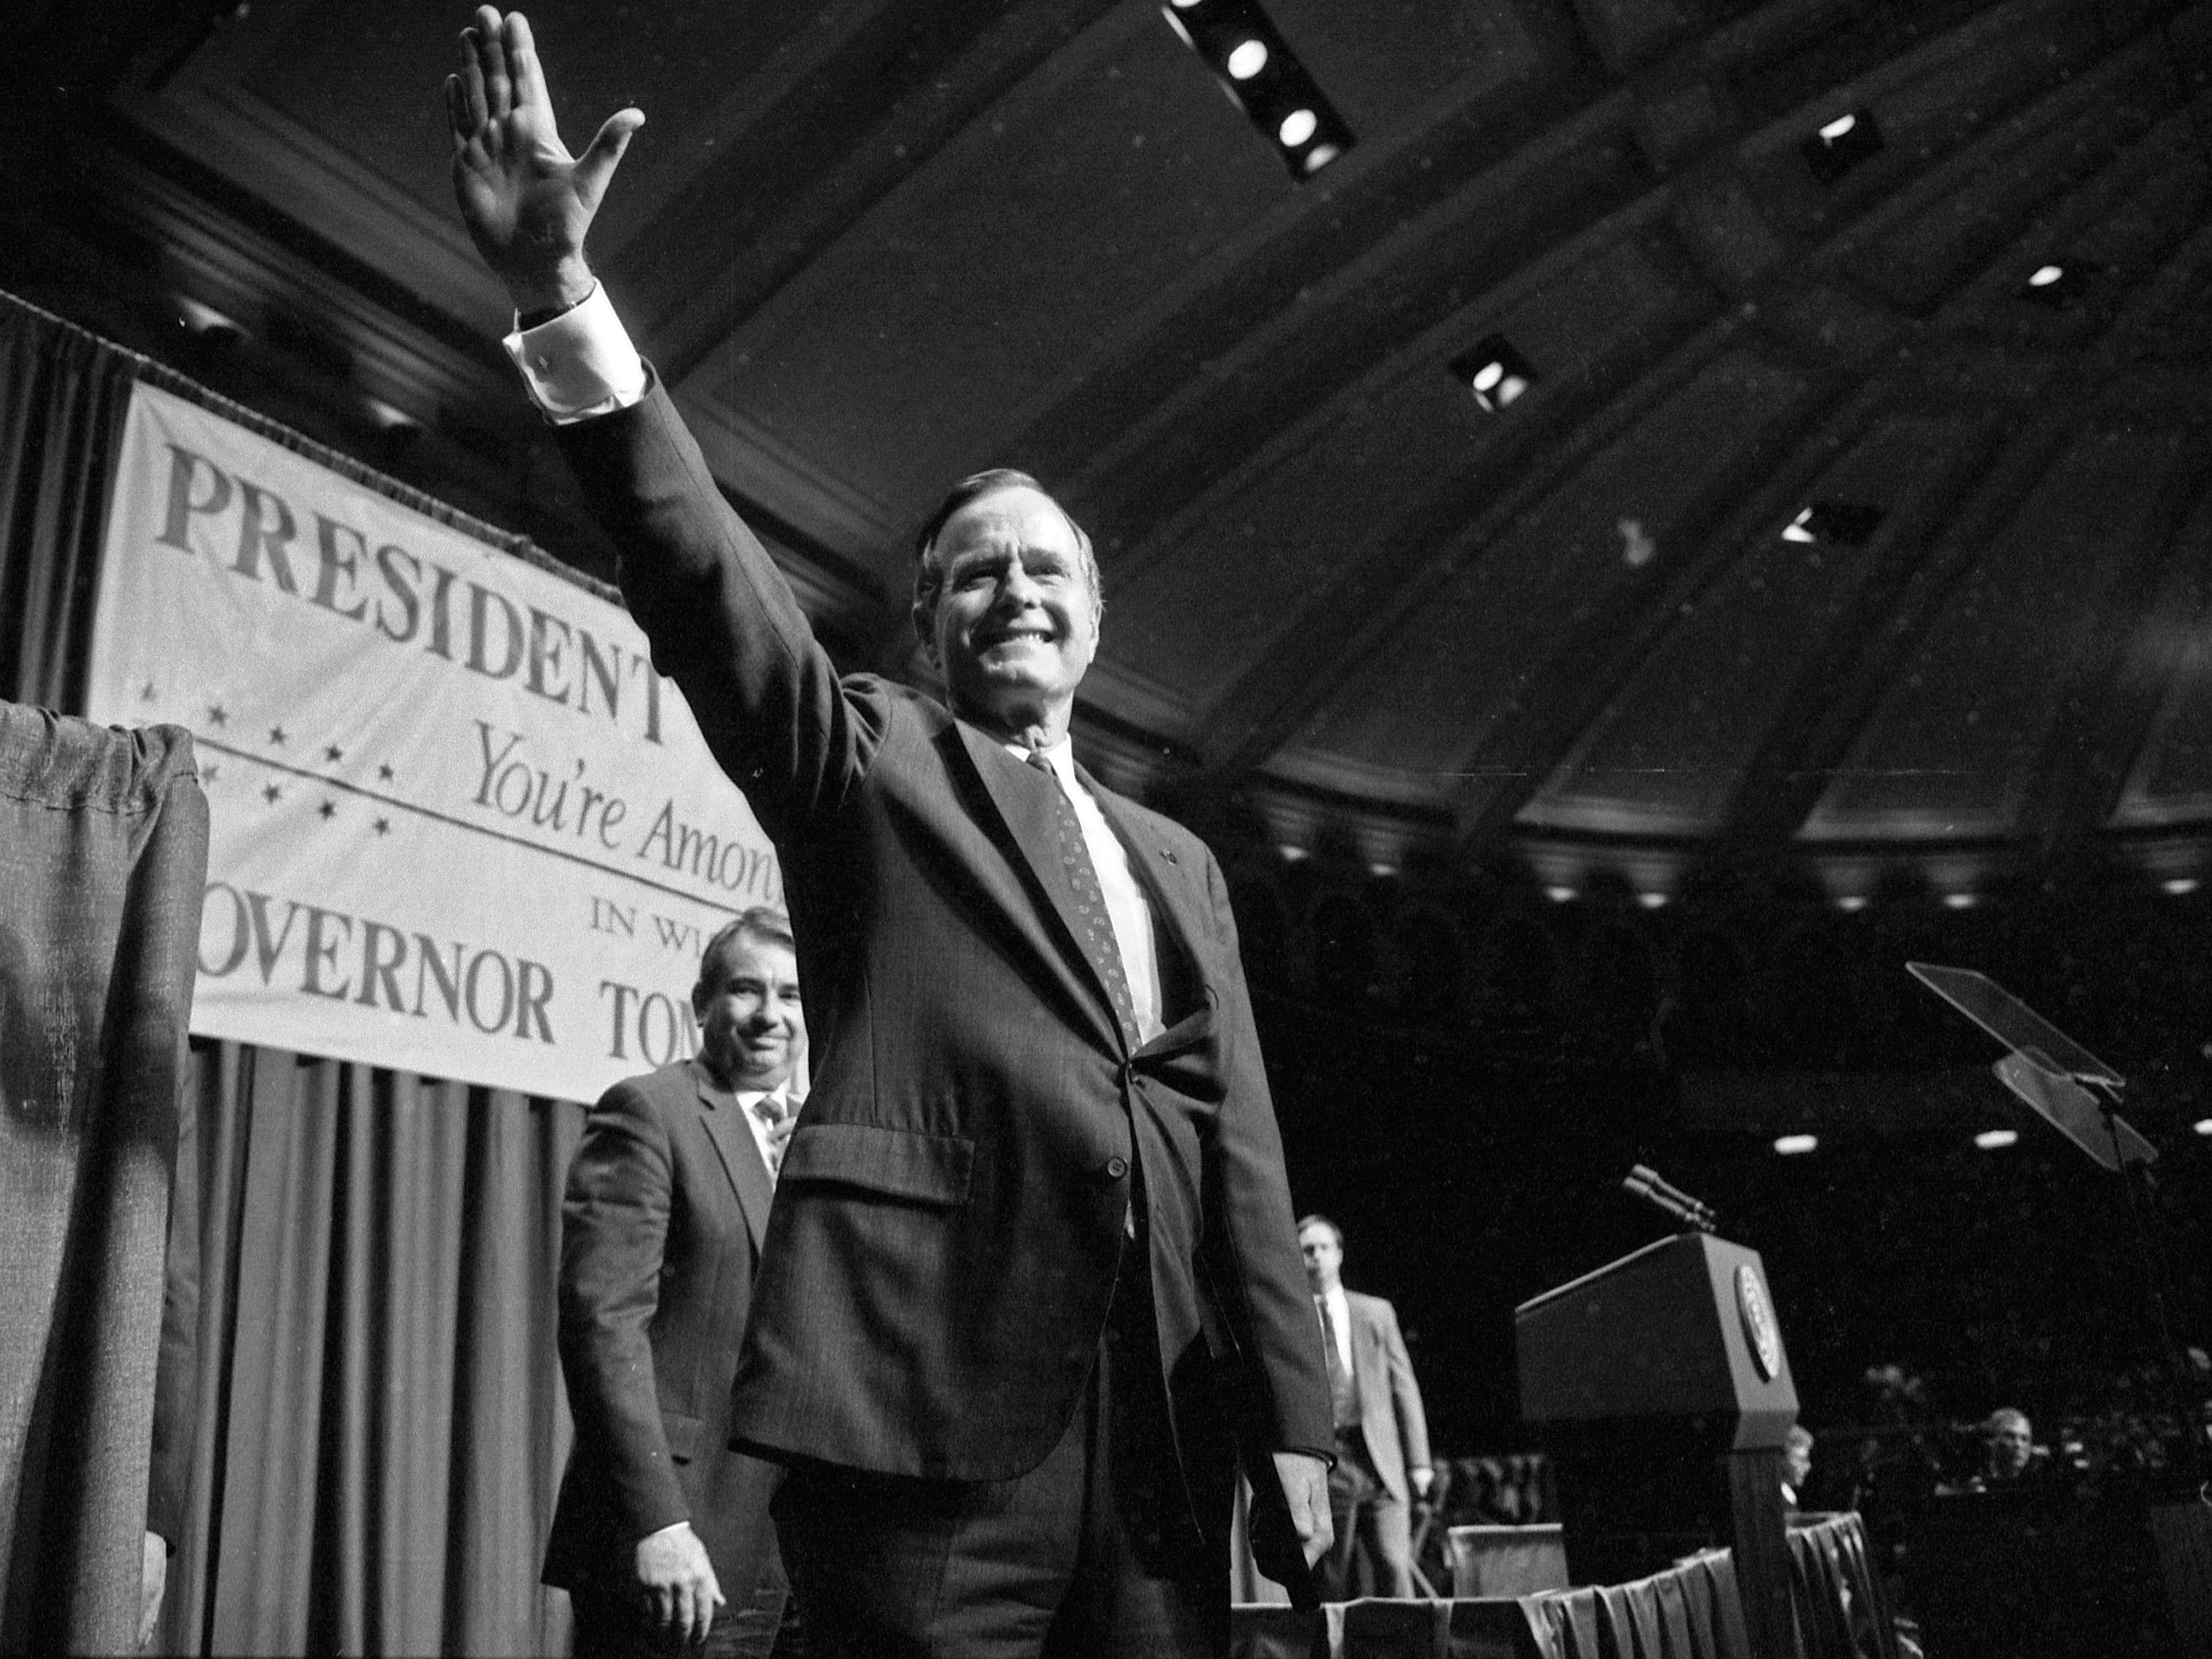 President George Bush visits Wisconsin in 1990 to campaign for Gov. Tommy Thompson at the Milwaukee Auditorium.